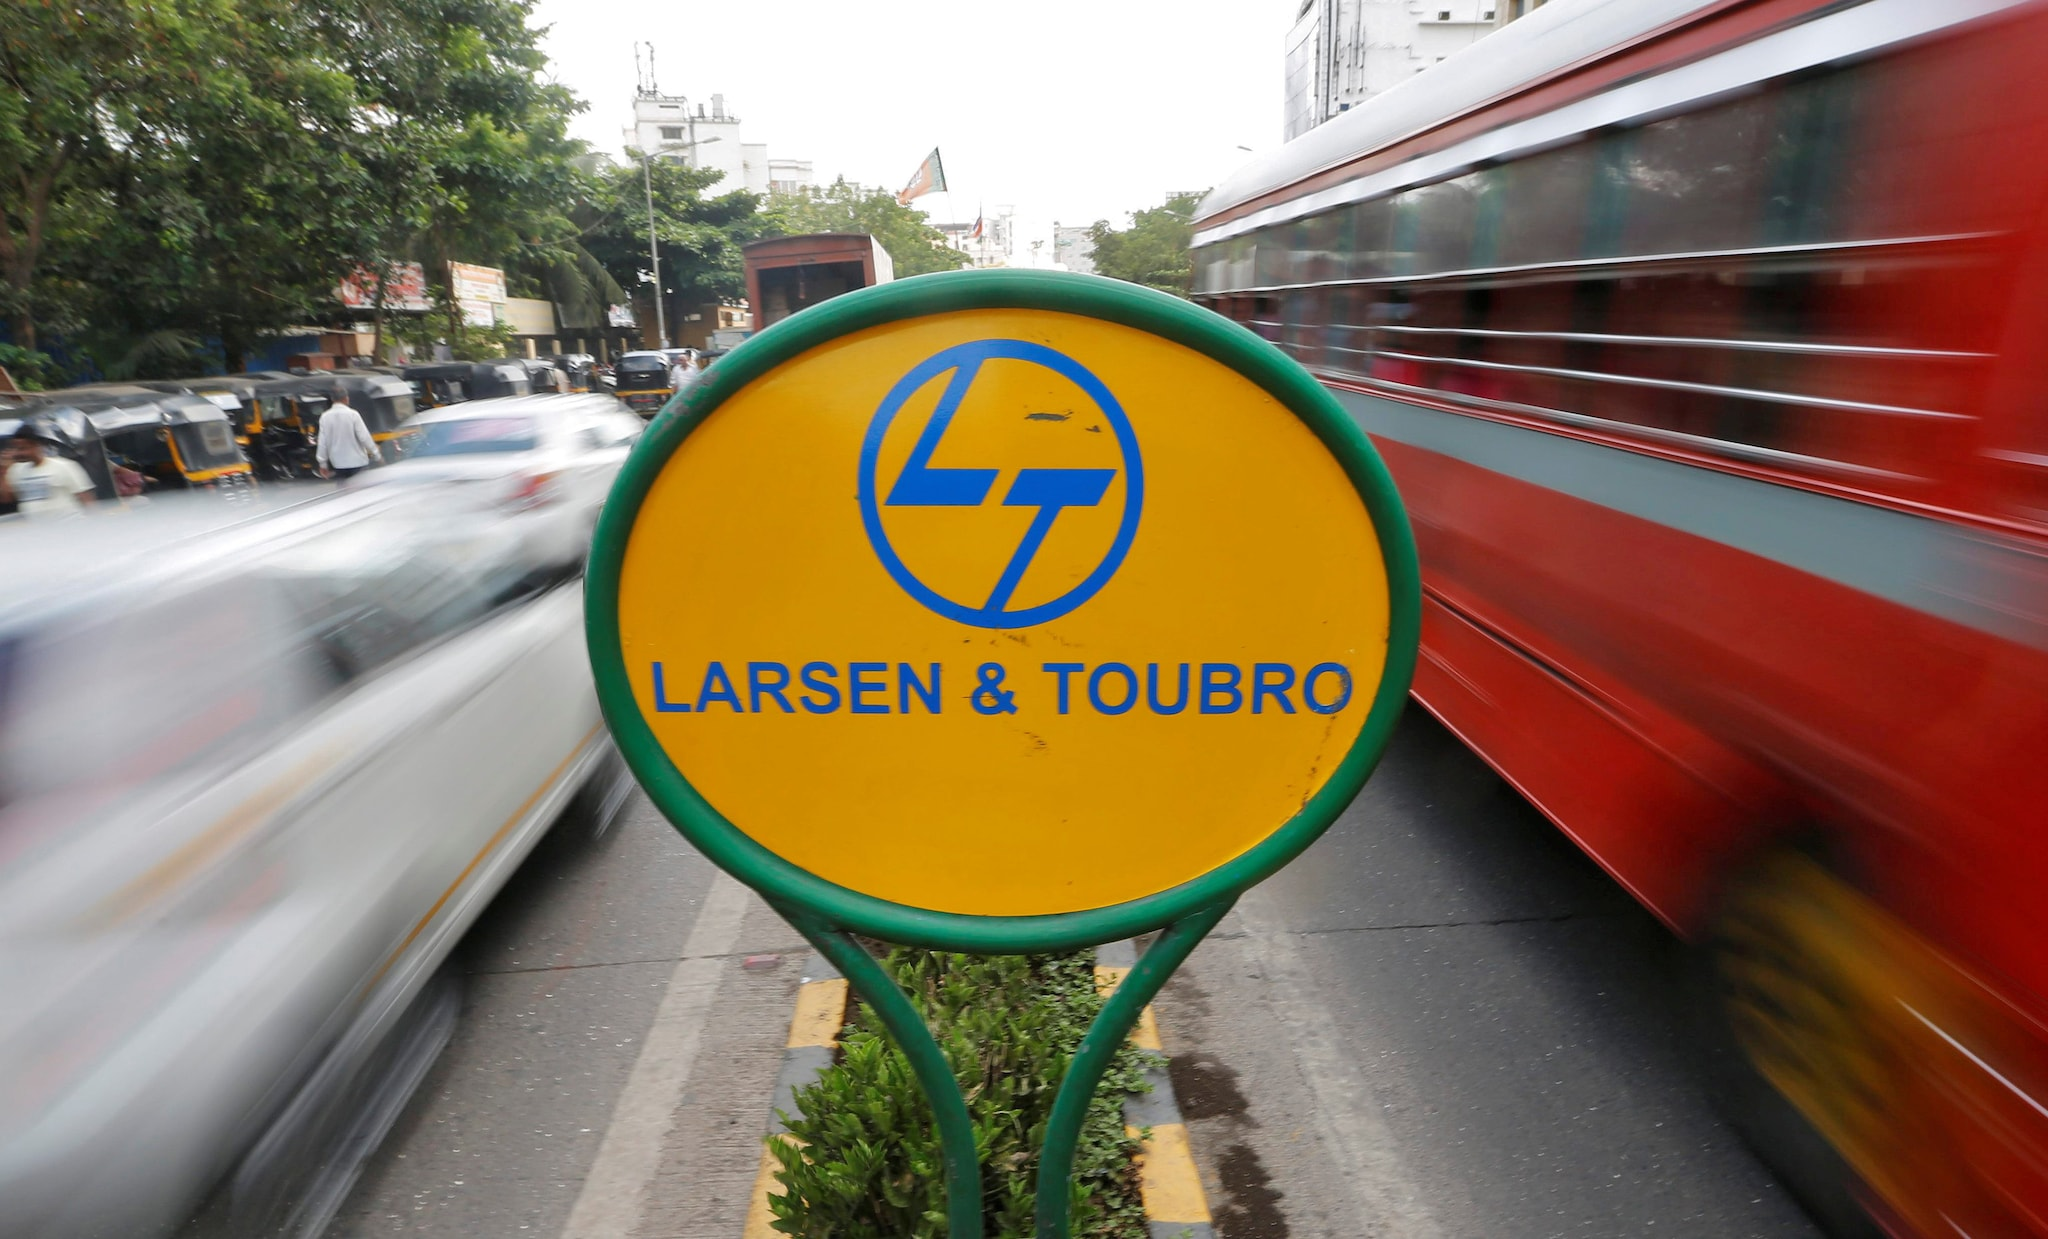 Larsen & Toubro: L&T reported a 7.9 percent rise in its consolidated net profit at Rs 3,418.24 crore for the quarter ended March 31, mainly on the back of strong revenues and improved execution efficiency. Its net profit stood at Rs 3,167.47 crore during the corresponding period a year ago. (Stock image)